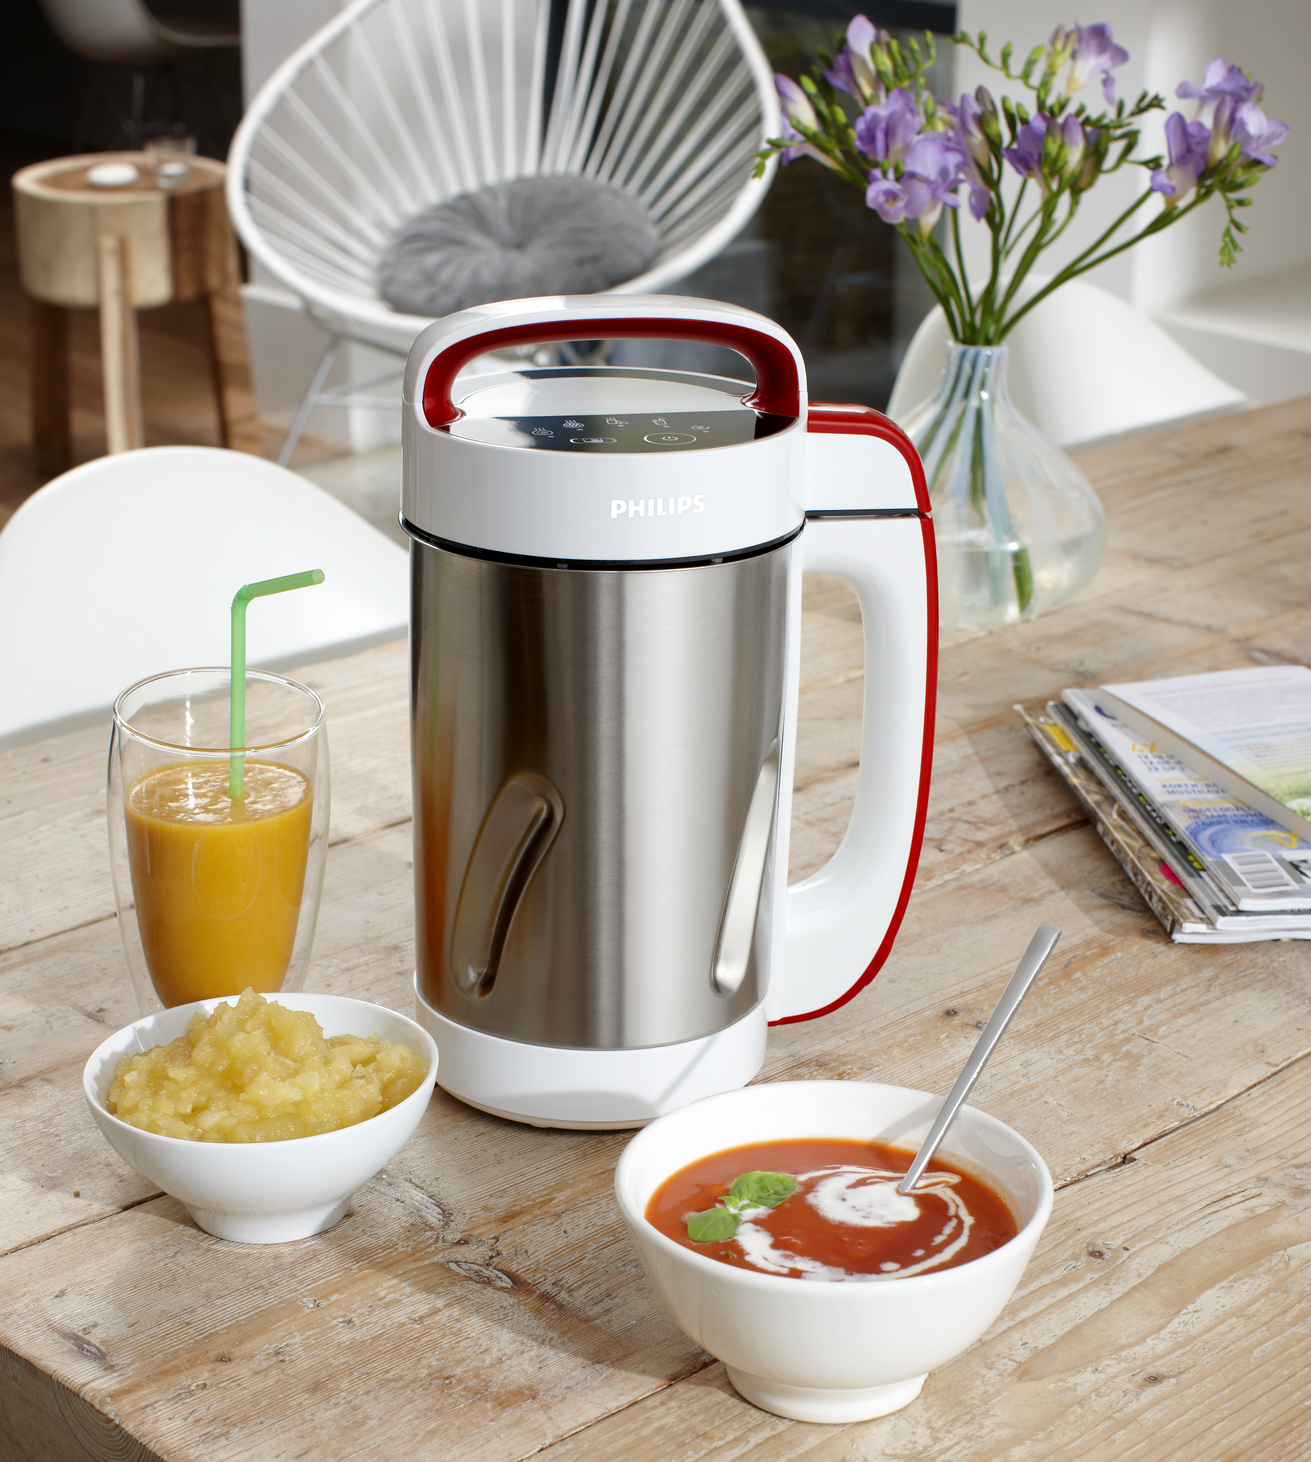 Culy Test De Philips Soupmaker